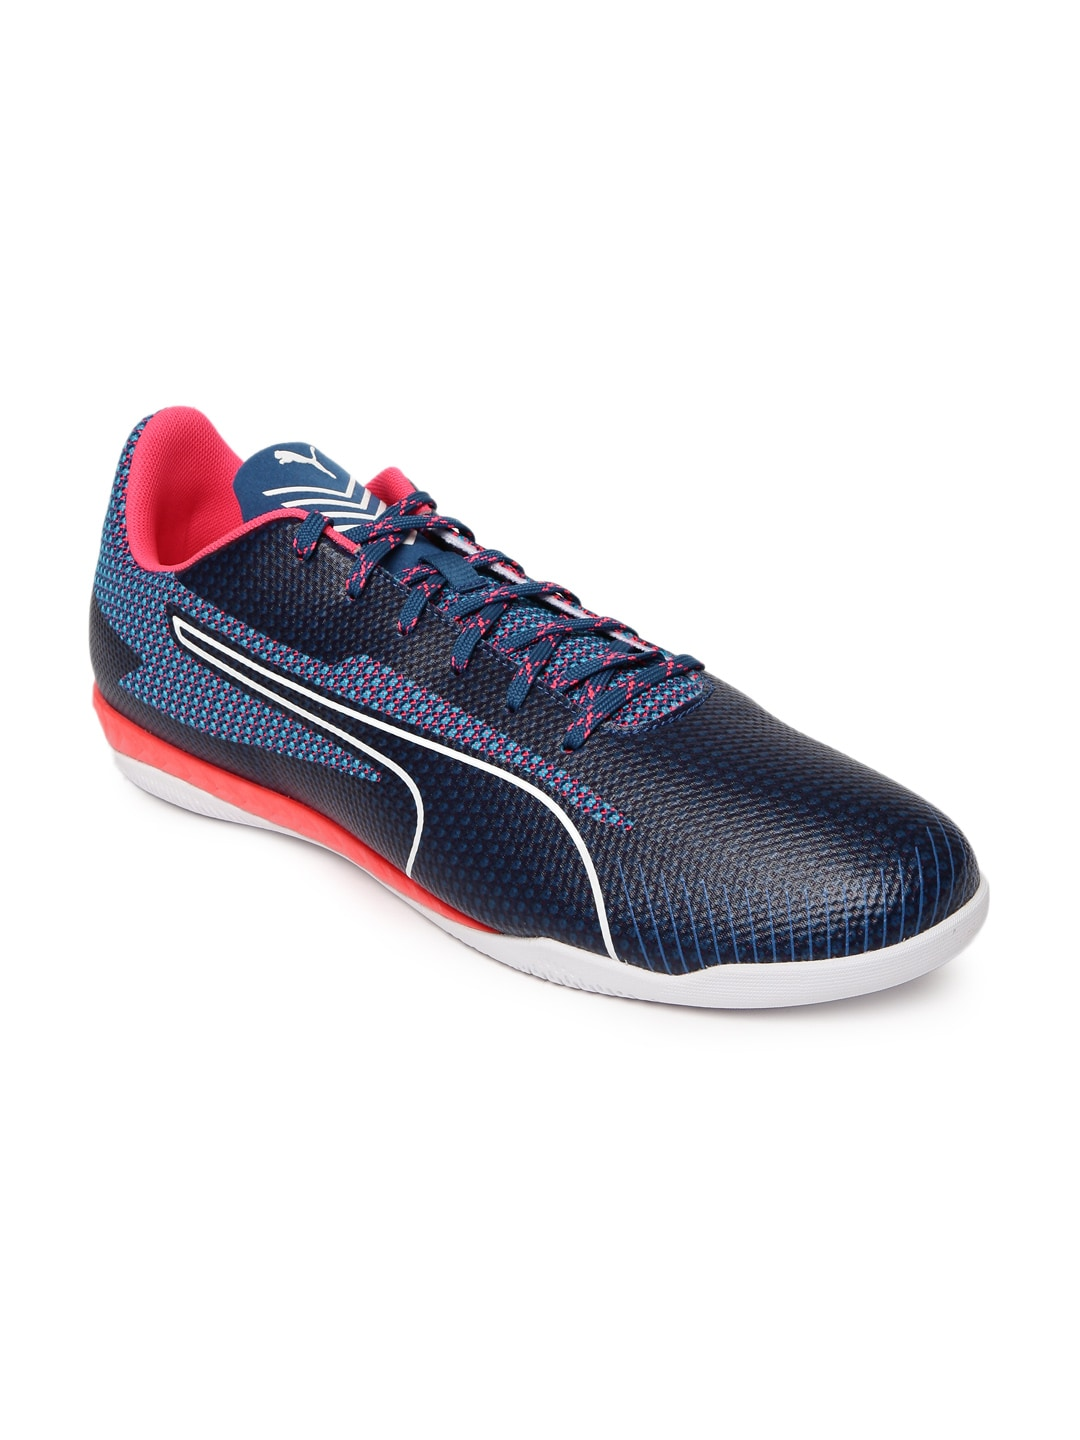 68e35de2a6c1 Puma Shoes - Buy Puma Shoes for Men   Women Online in India